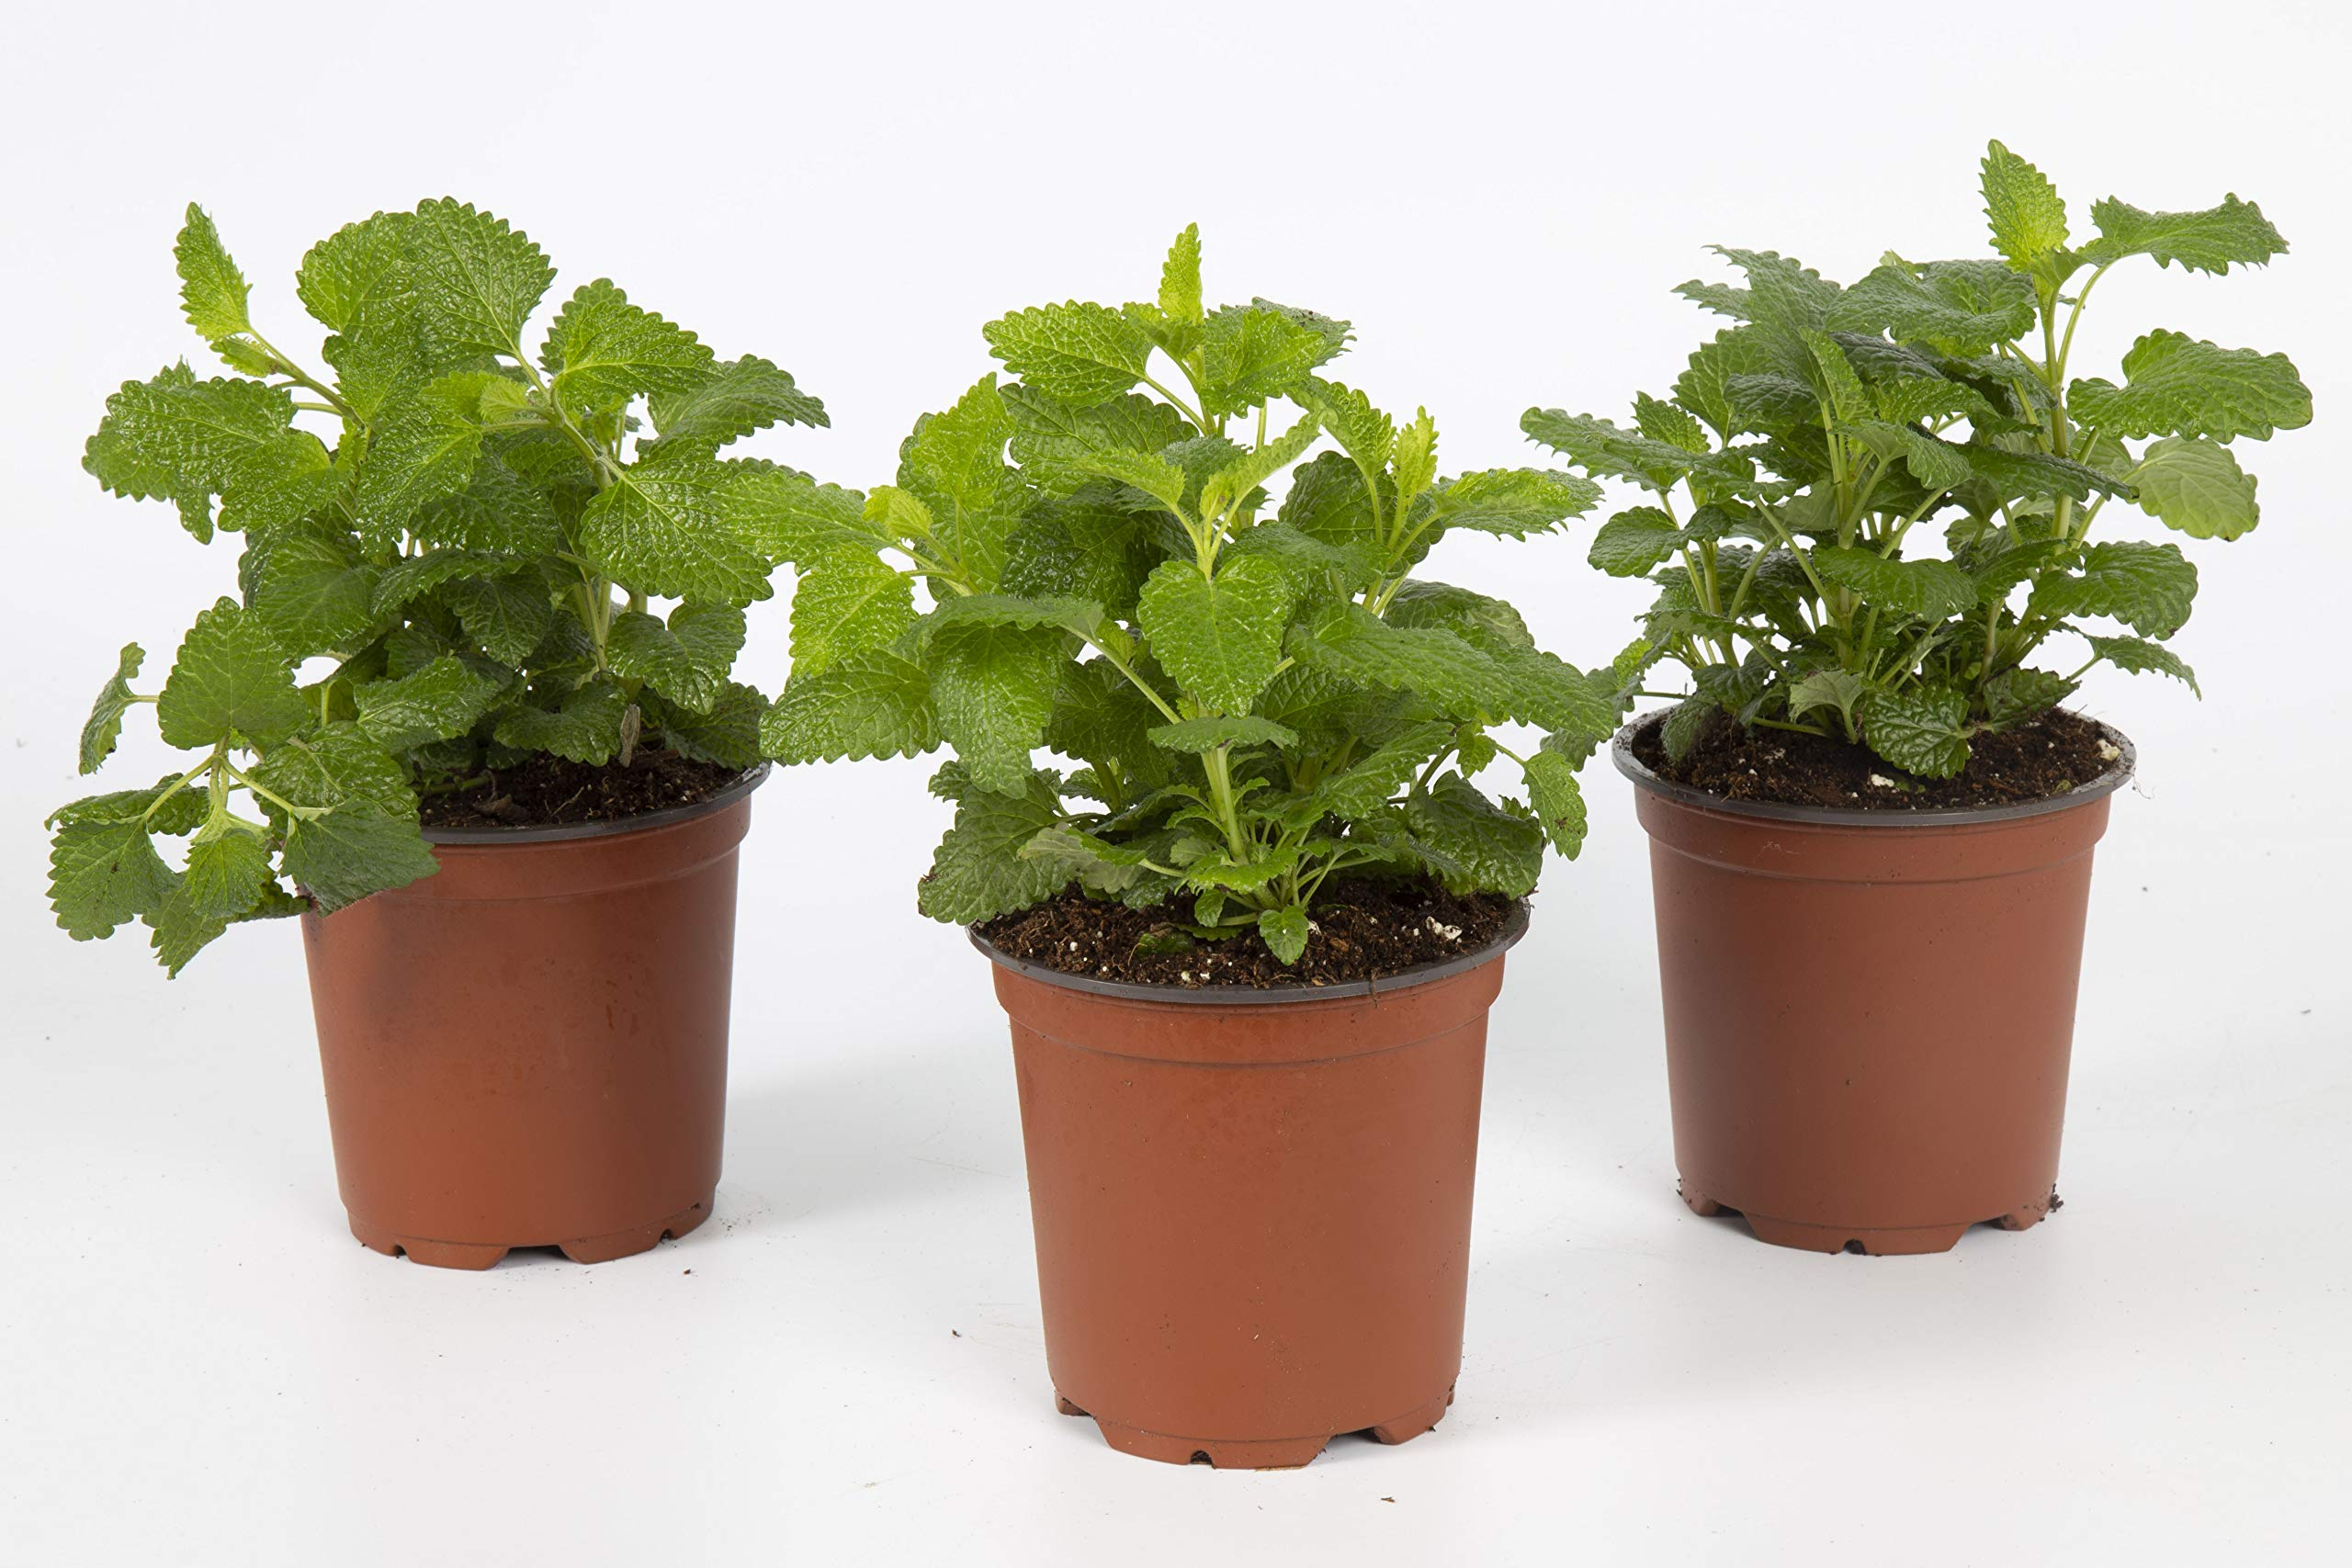 The Three Company Healthy Live 4'' Lemon Balm ((3 Per Pack), 1 Pint Pot, Natural Stress Reliever